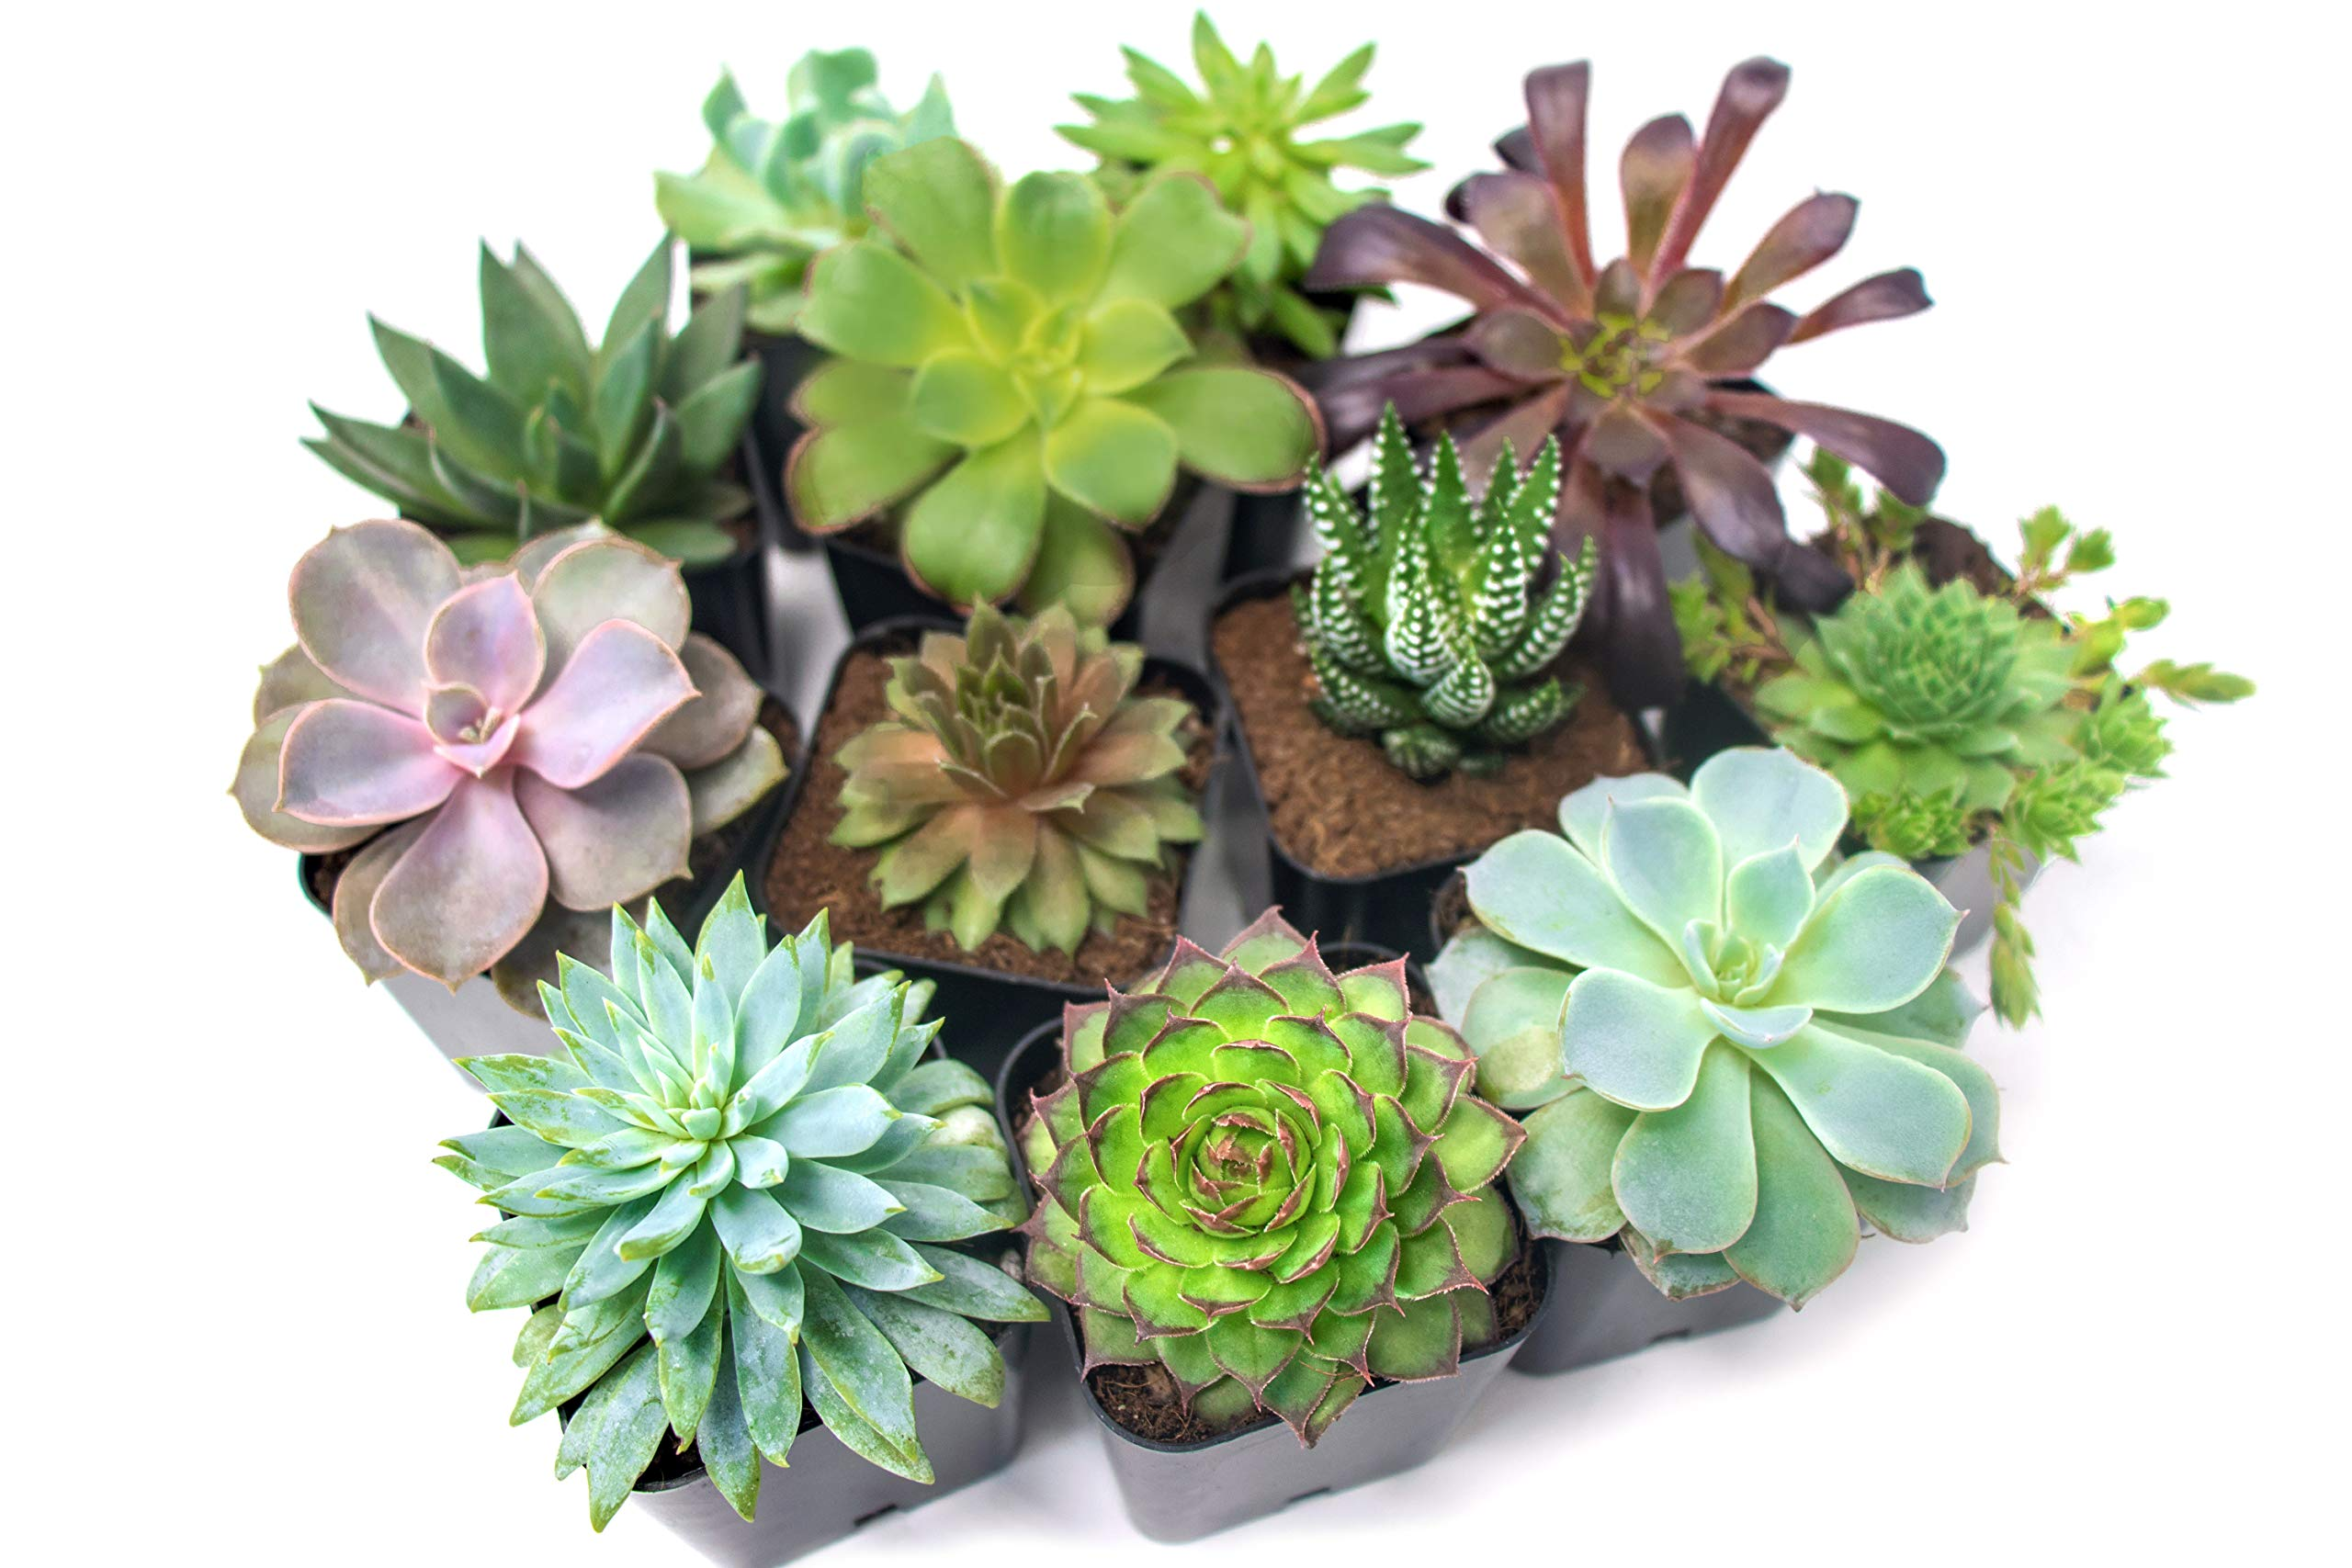 Succulent Plants (20 Pack) Fully Rooted in Planter Pots with Soil | Real Live Potted Succulents / Unique Indoor Cactus Decor by Plants for Pets 9 HAND SELECTED: Every pack of succulents we send is hand-picked. You will receive a unique collection of species that are fully rooted and similar to the product photos. Note that we rotate our nursery stock often, so the exact species we send changes every week. THE EASIEST HOUSE PLANTS: More appealing than artificial plastic or fake faux plants, and care is a cinch. If you think you can't keep houseplants alive, you're wrong; our succulents don't require fertilizer and can be planted in a decorative pot of your choice within seconds. DIY HOME DECOR: The possibilities are only limited by your imagination; display them in a plant holder, a wall mount, a geometric glass vase, or even in a live wreath. Because of their amazingly low care requirements, they can even make the perfect desk centerpiece for your office.